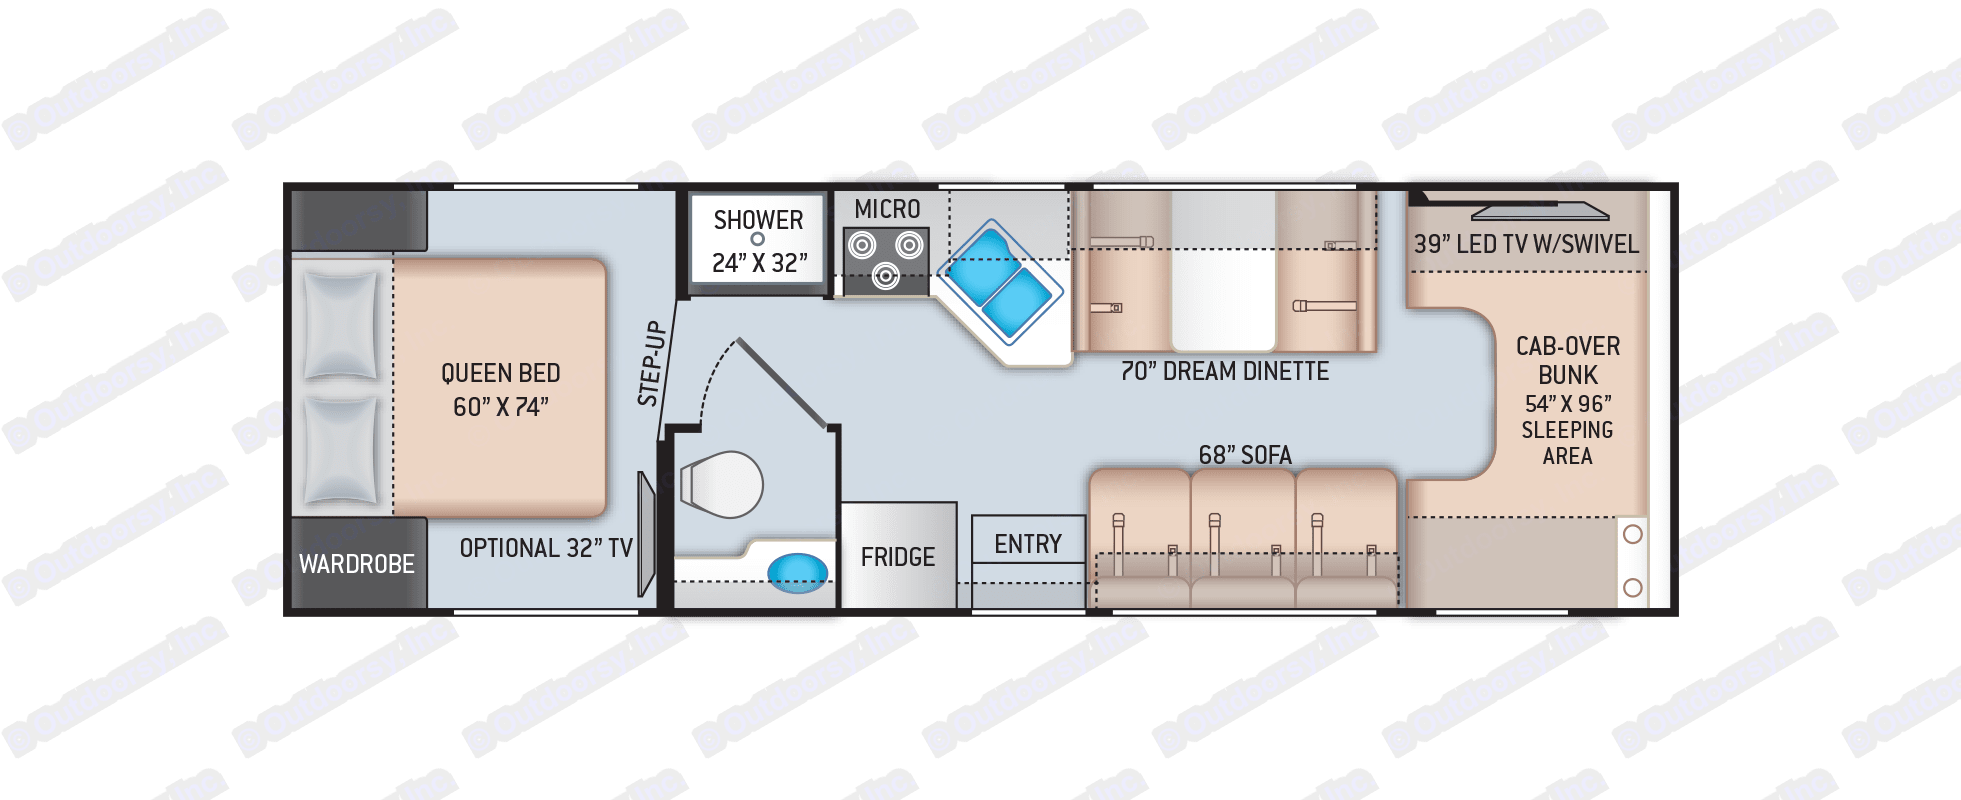 Open floor plan keeps entire coach accessible to your family on the road.. Thor Motor Coach Four Winds 2020